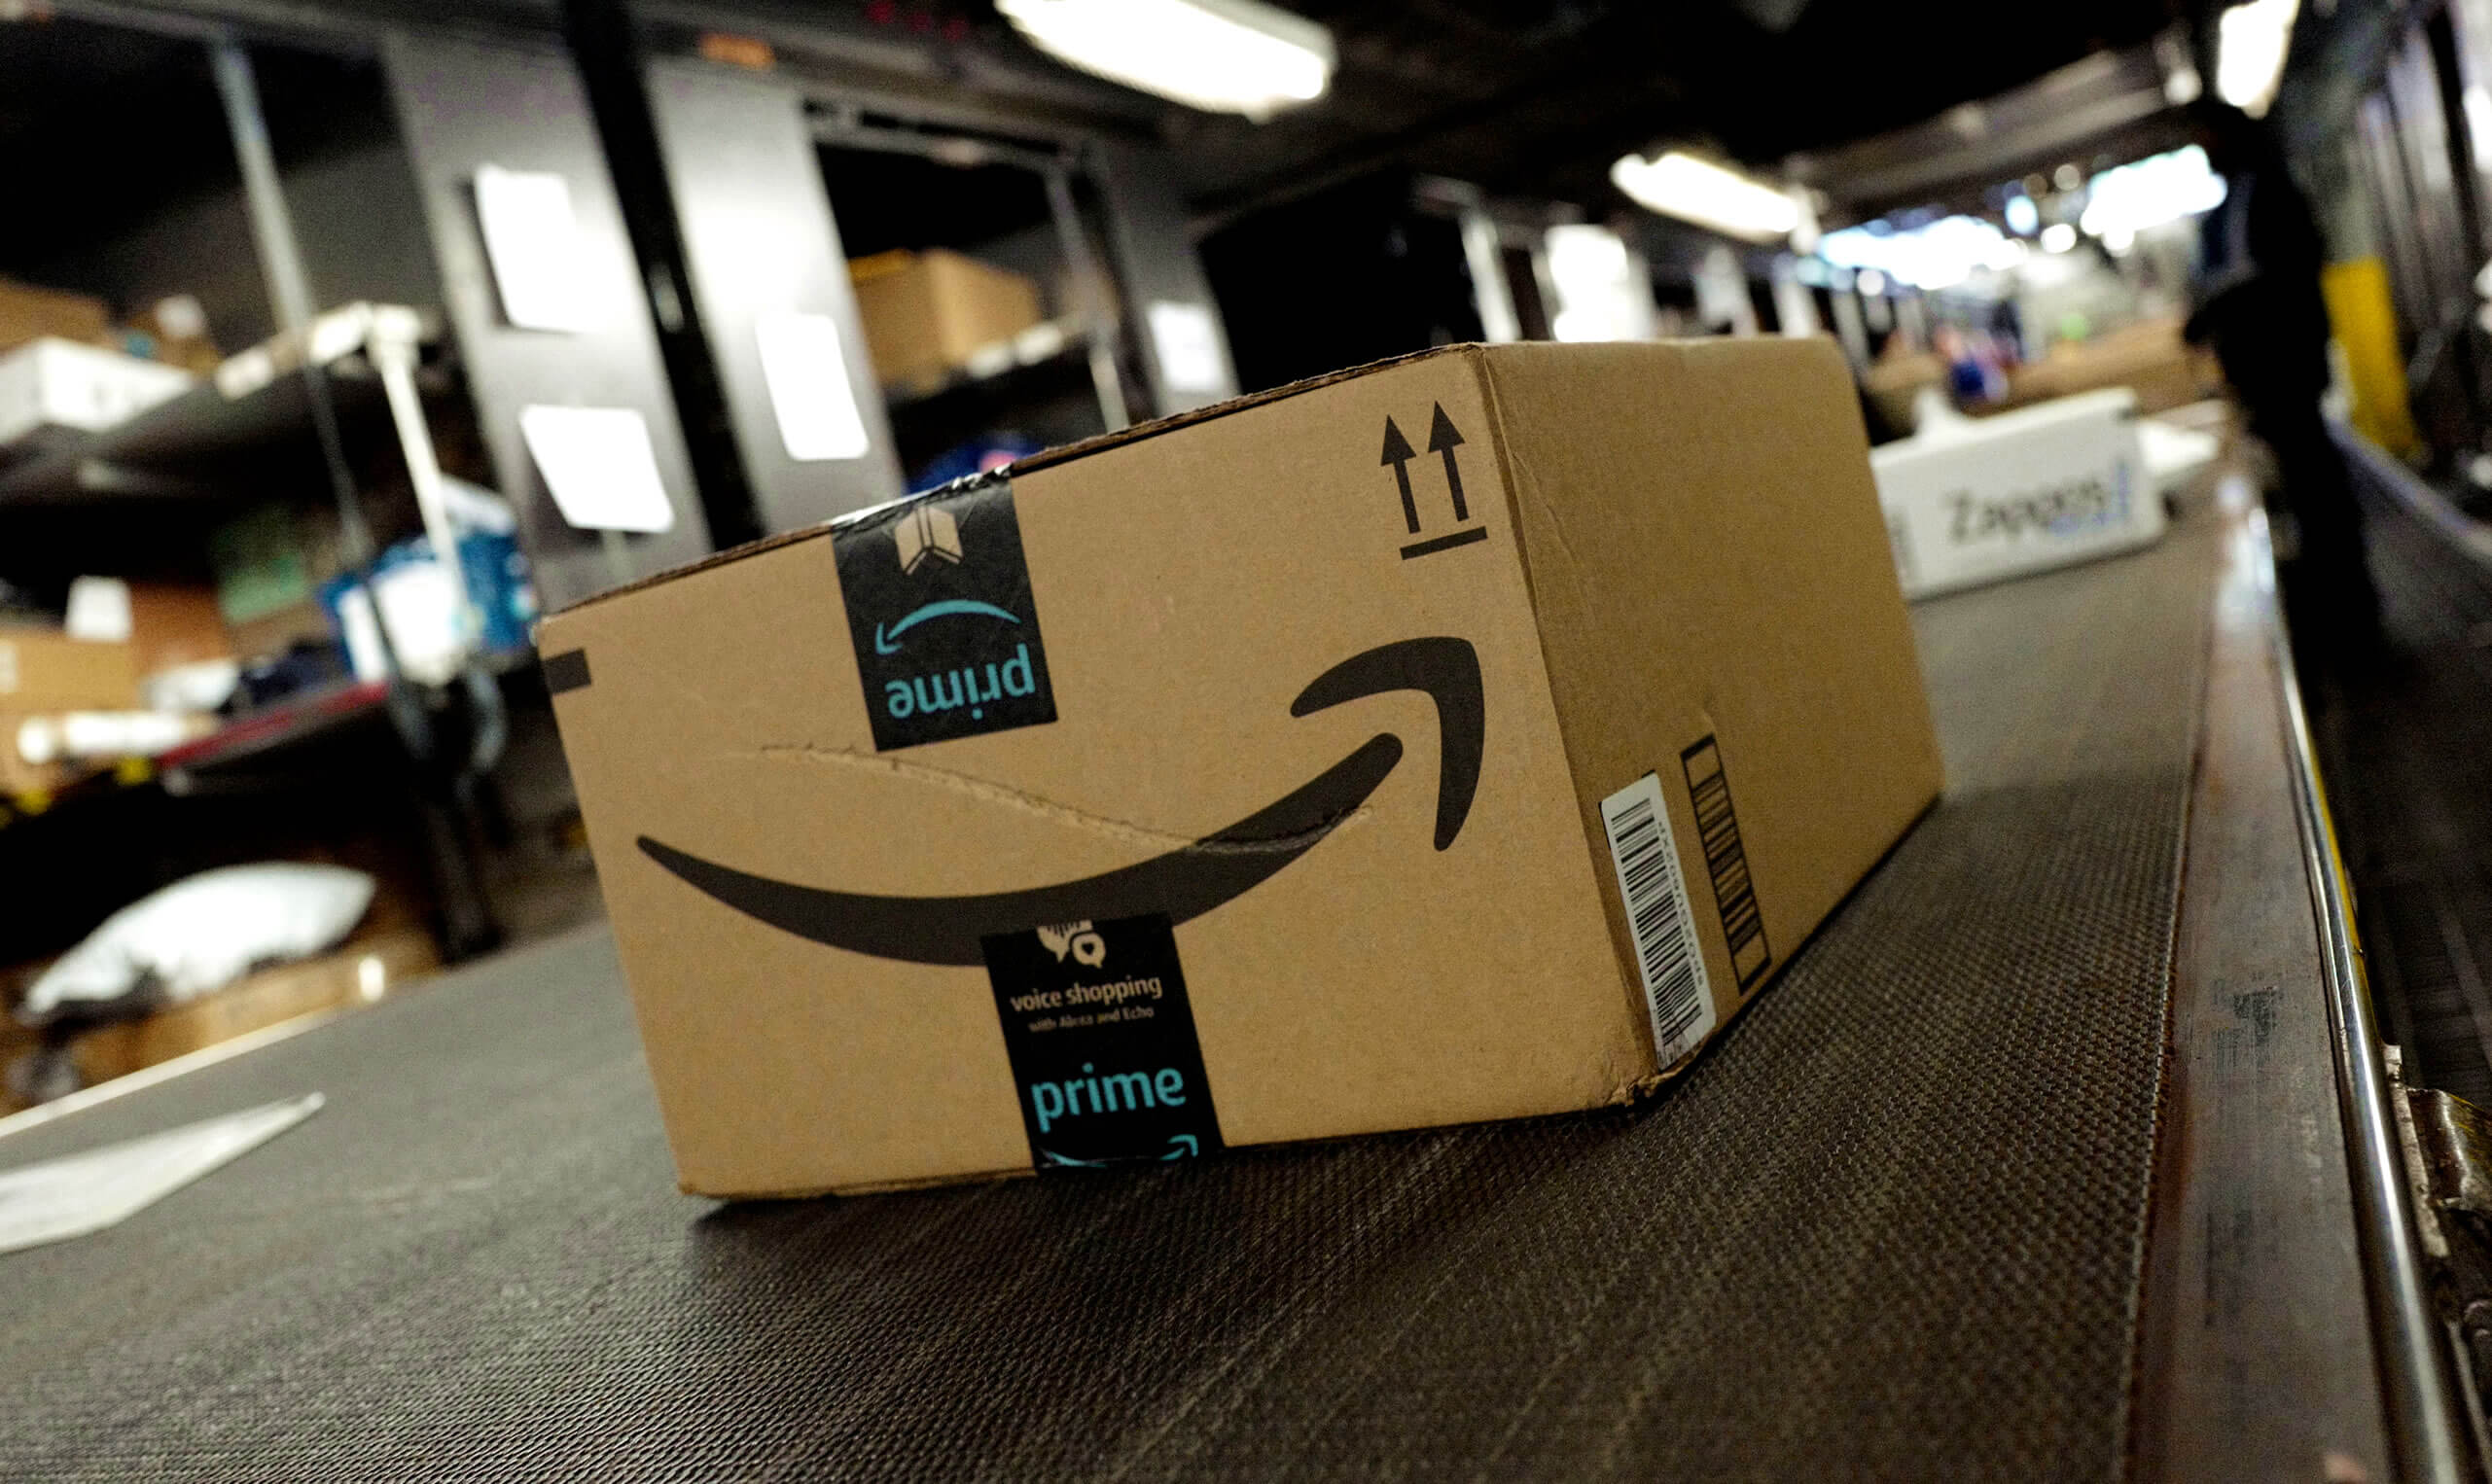 Some Amazon Prime deliveries are facing month-long delays